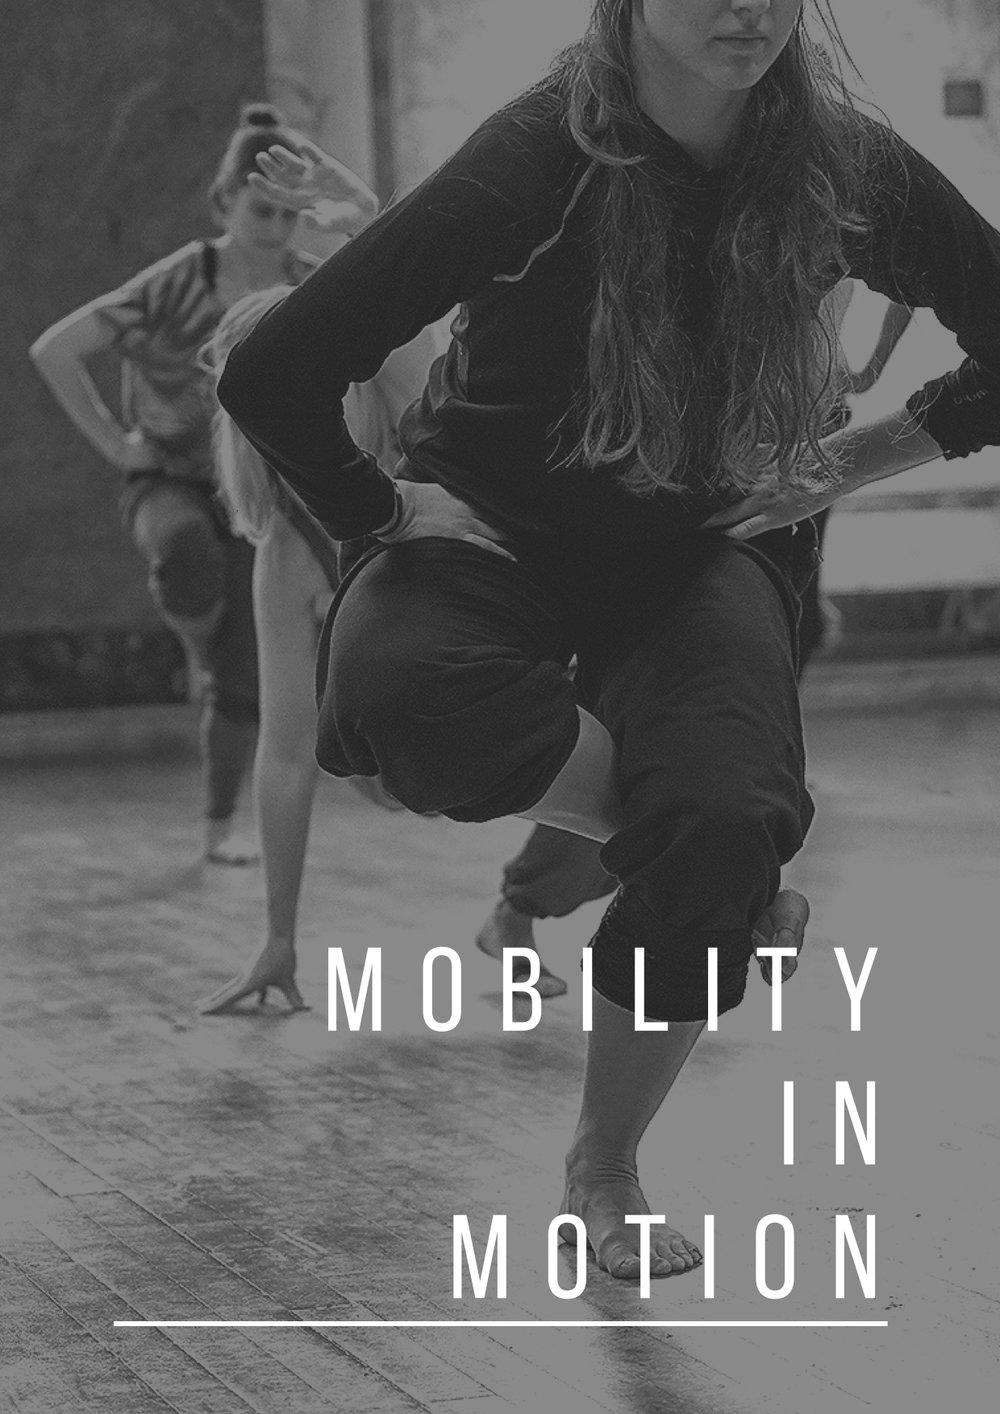 Mobility in Motion 2.jpg